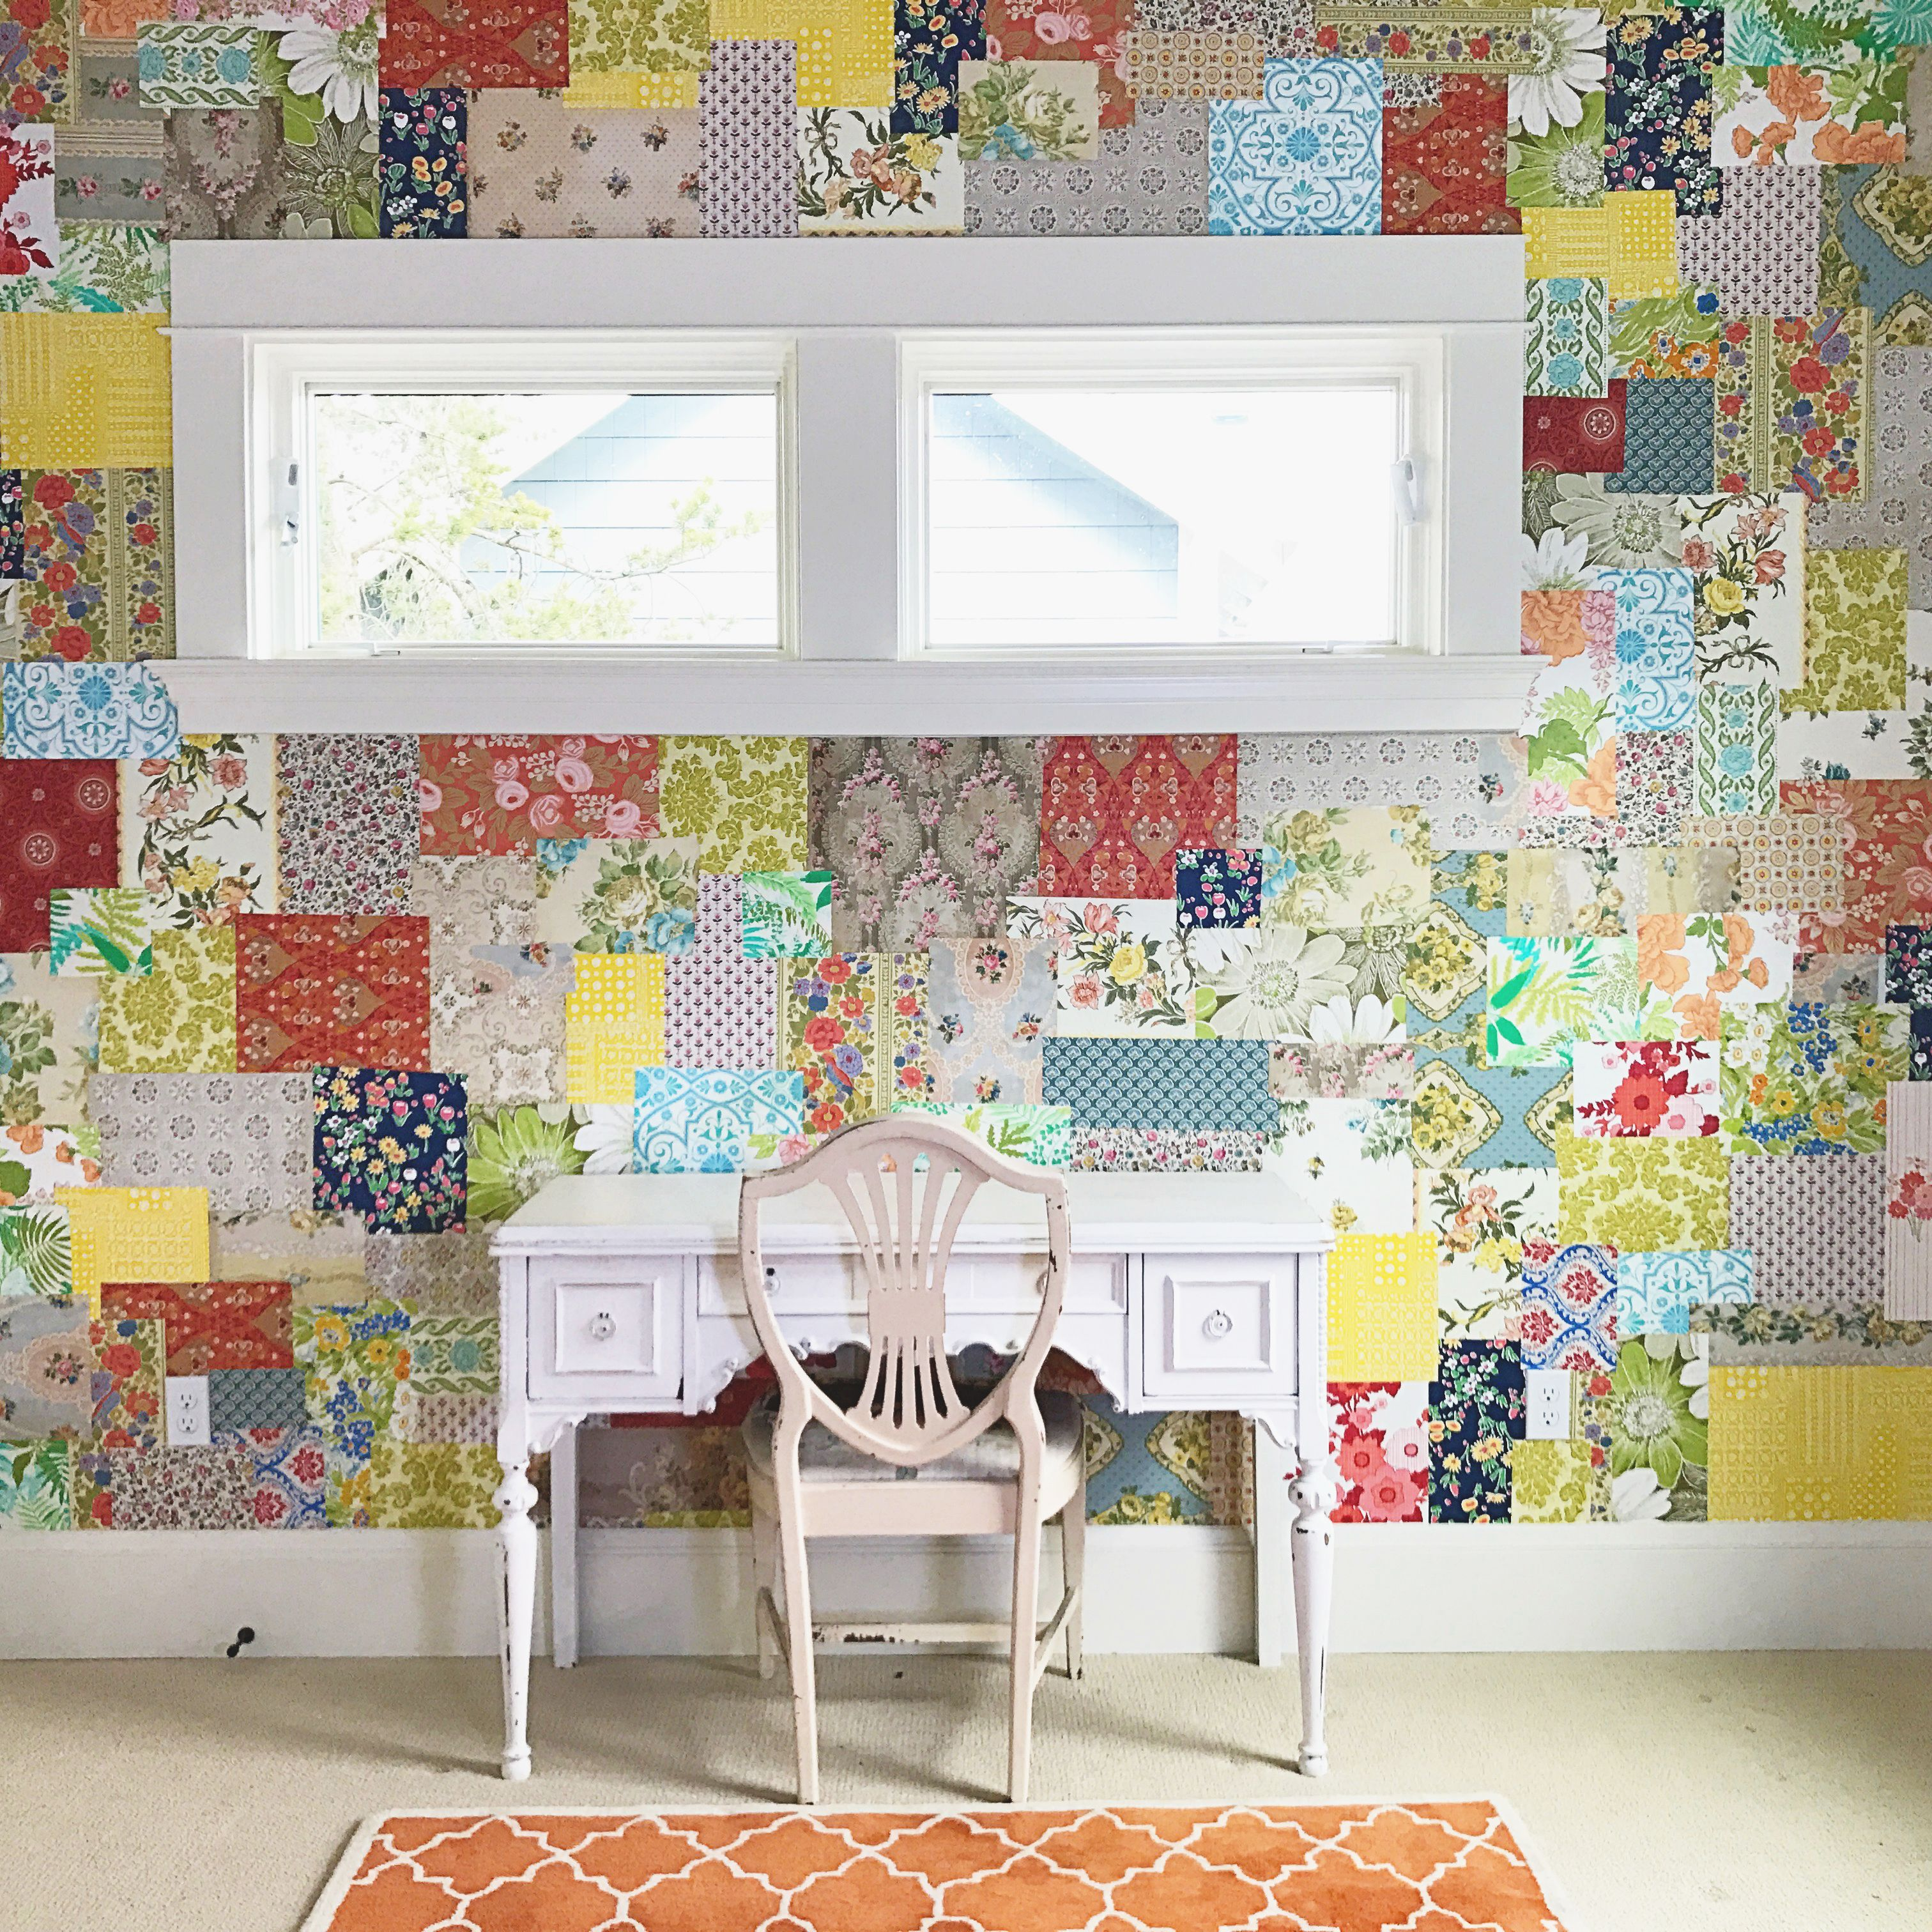 How To Make A Patchwork Wallpaper Wall Using Vintage Wallpapers  # Oohlala Muebles Y Accesorios Infantiles